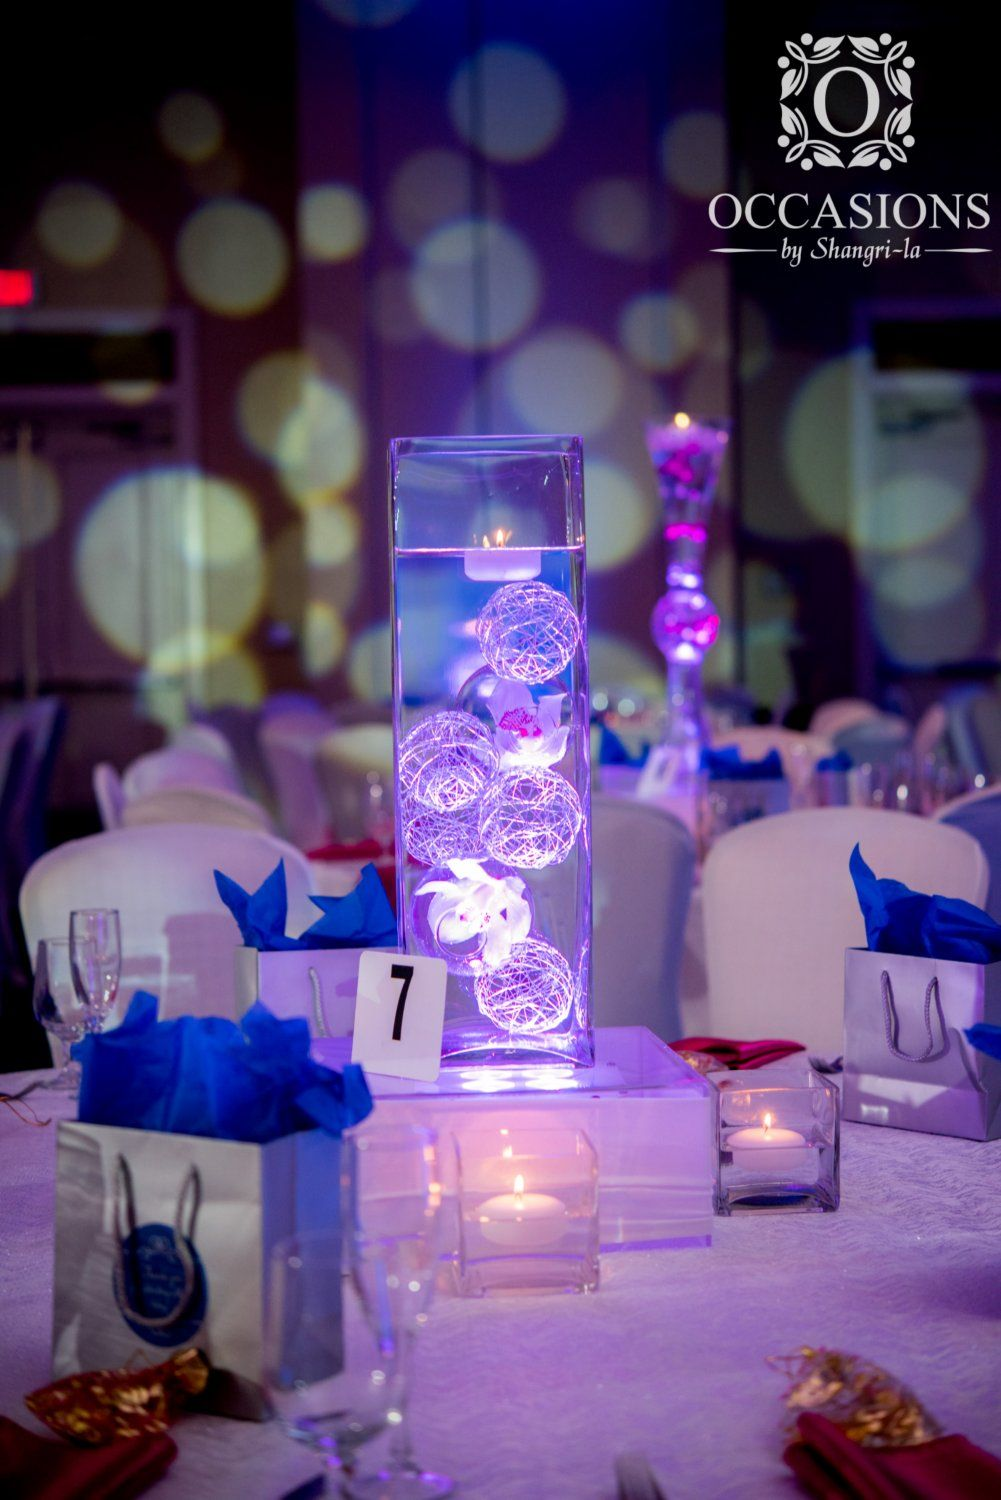 Louisiana Map Decor%0A Occasions by ShangriLa  a full service event decor and floral company  based out